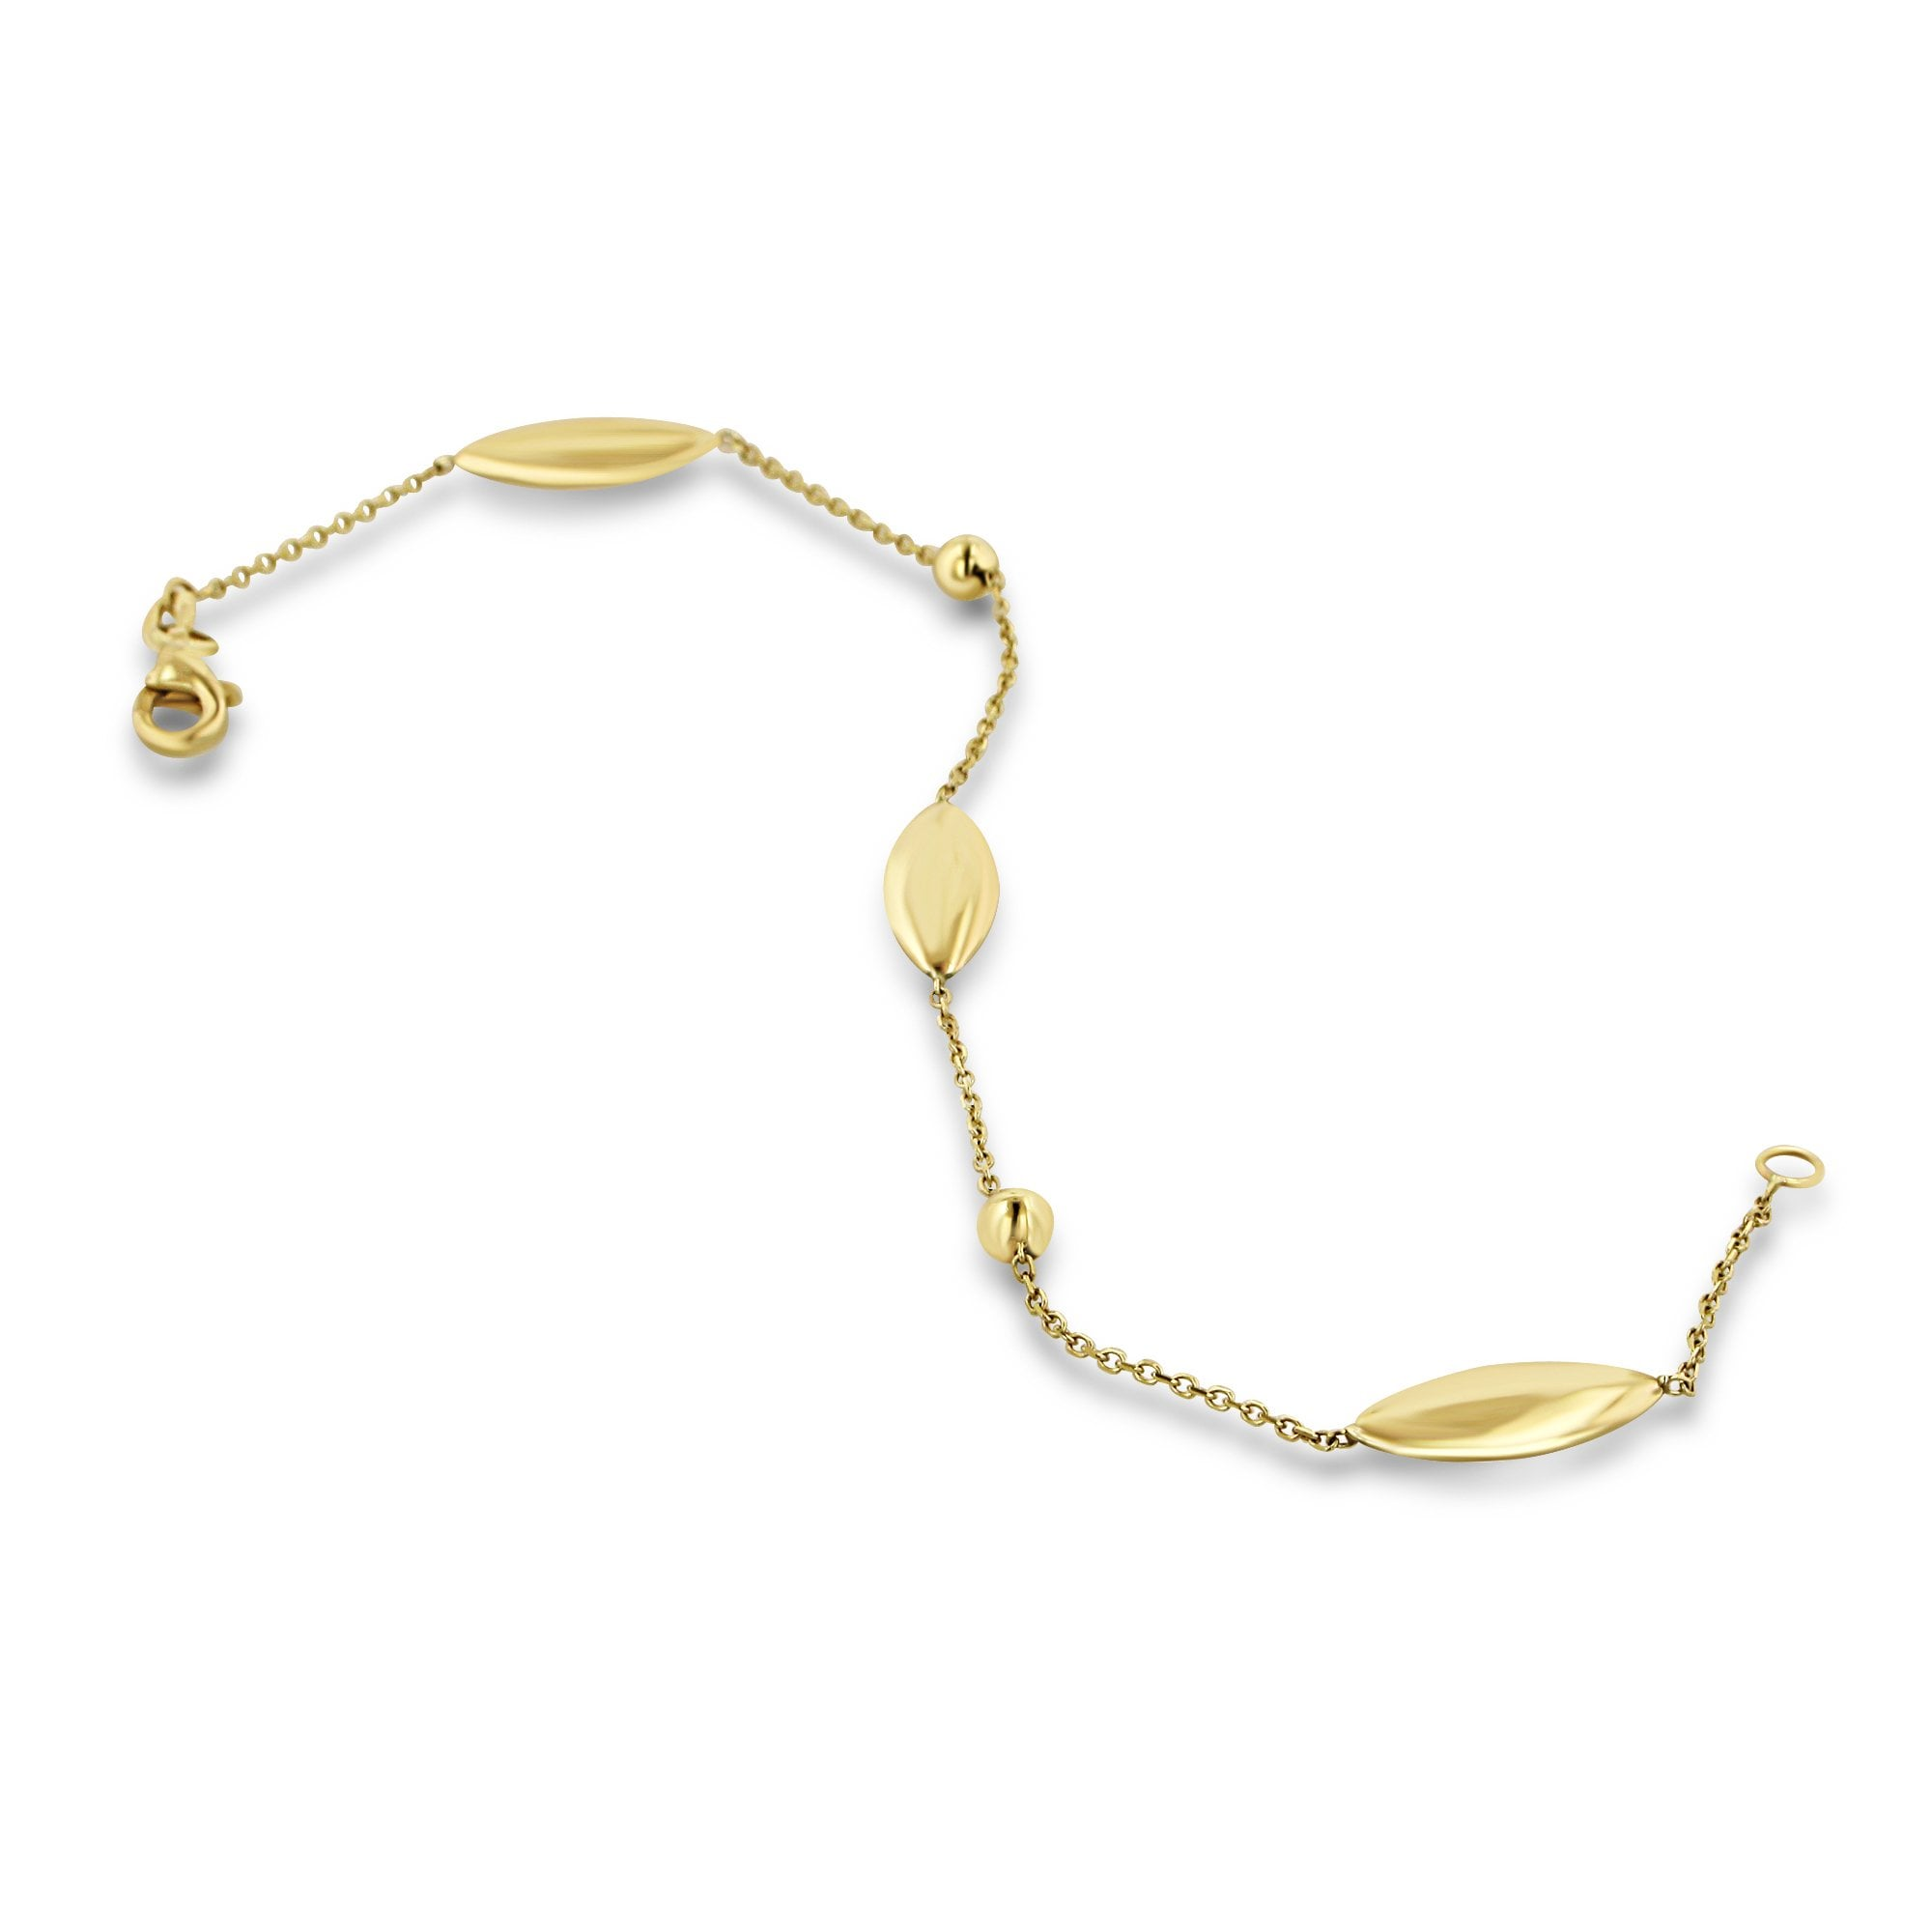 9ct Yellow Gold Delicate Chain And Link Bracelet Womens From